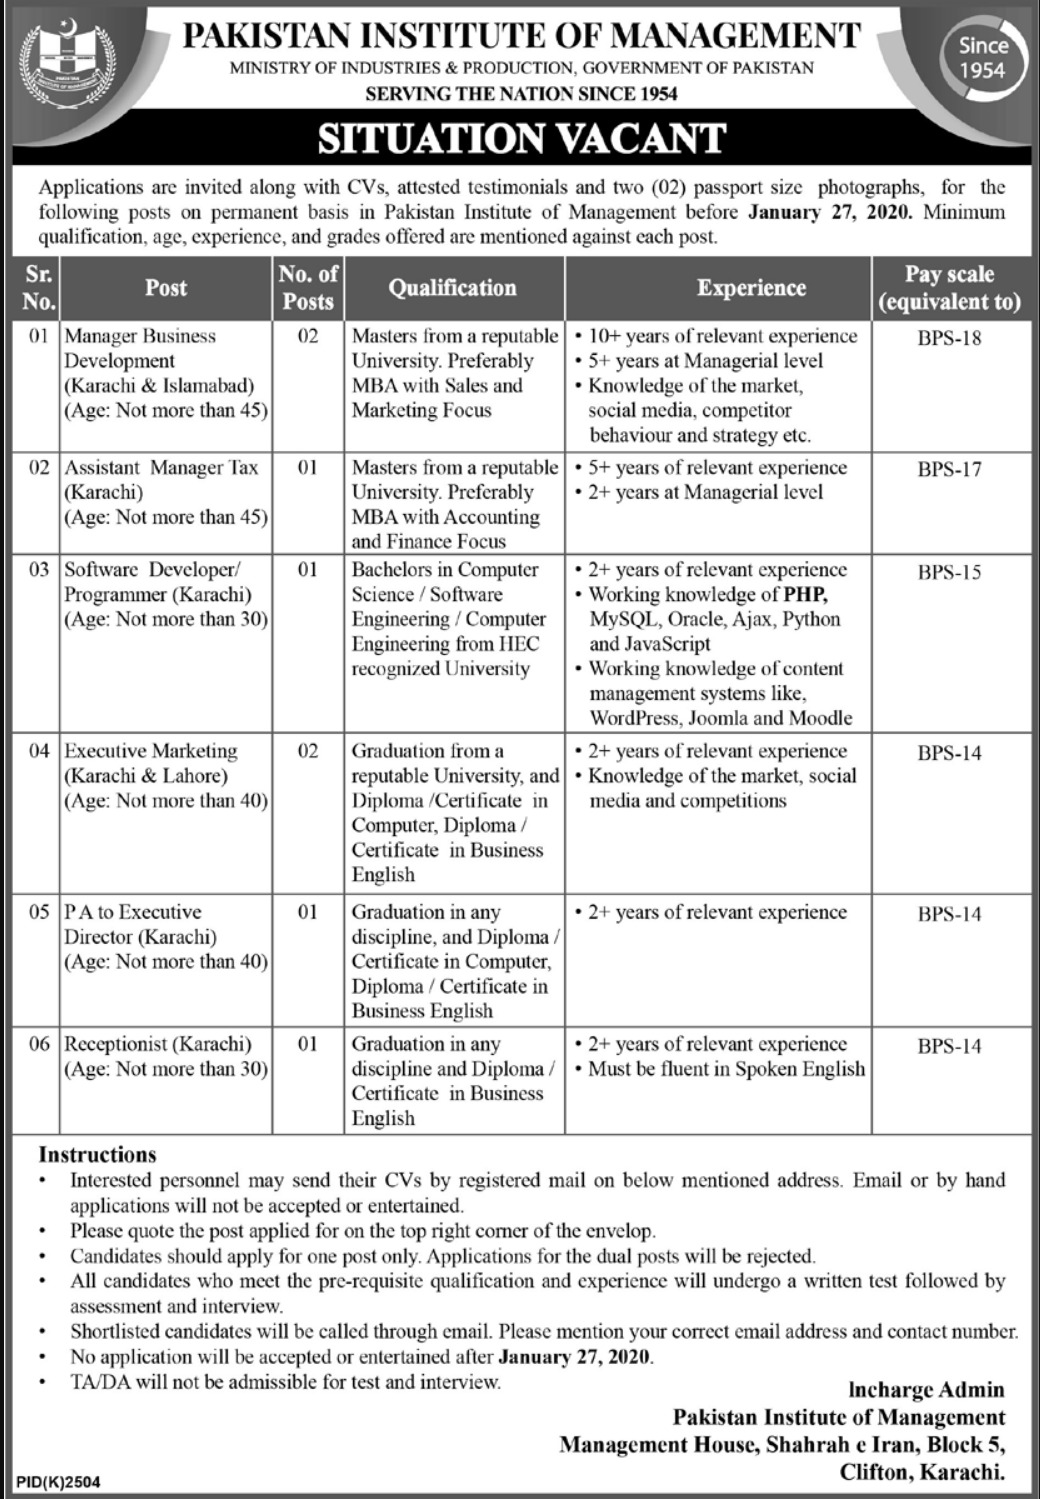 Pakistan Institute of Management Jobs 2020